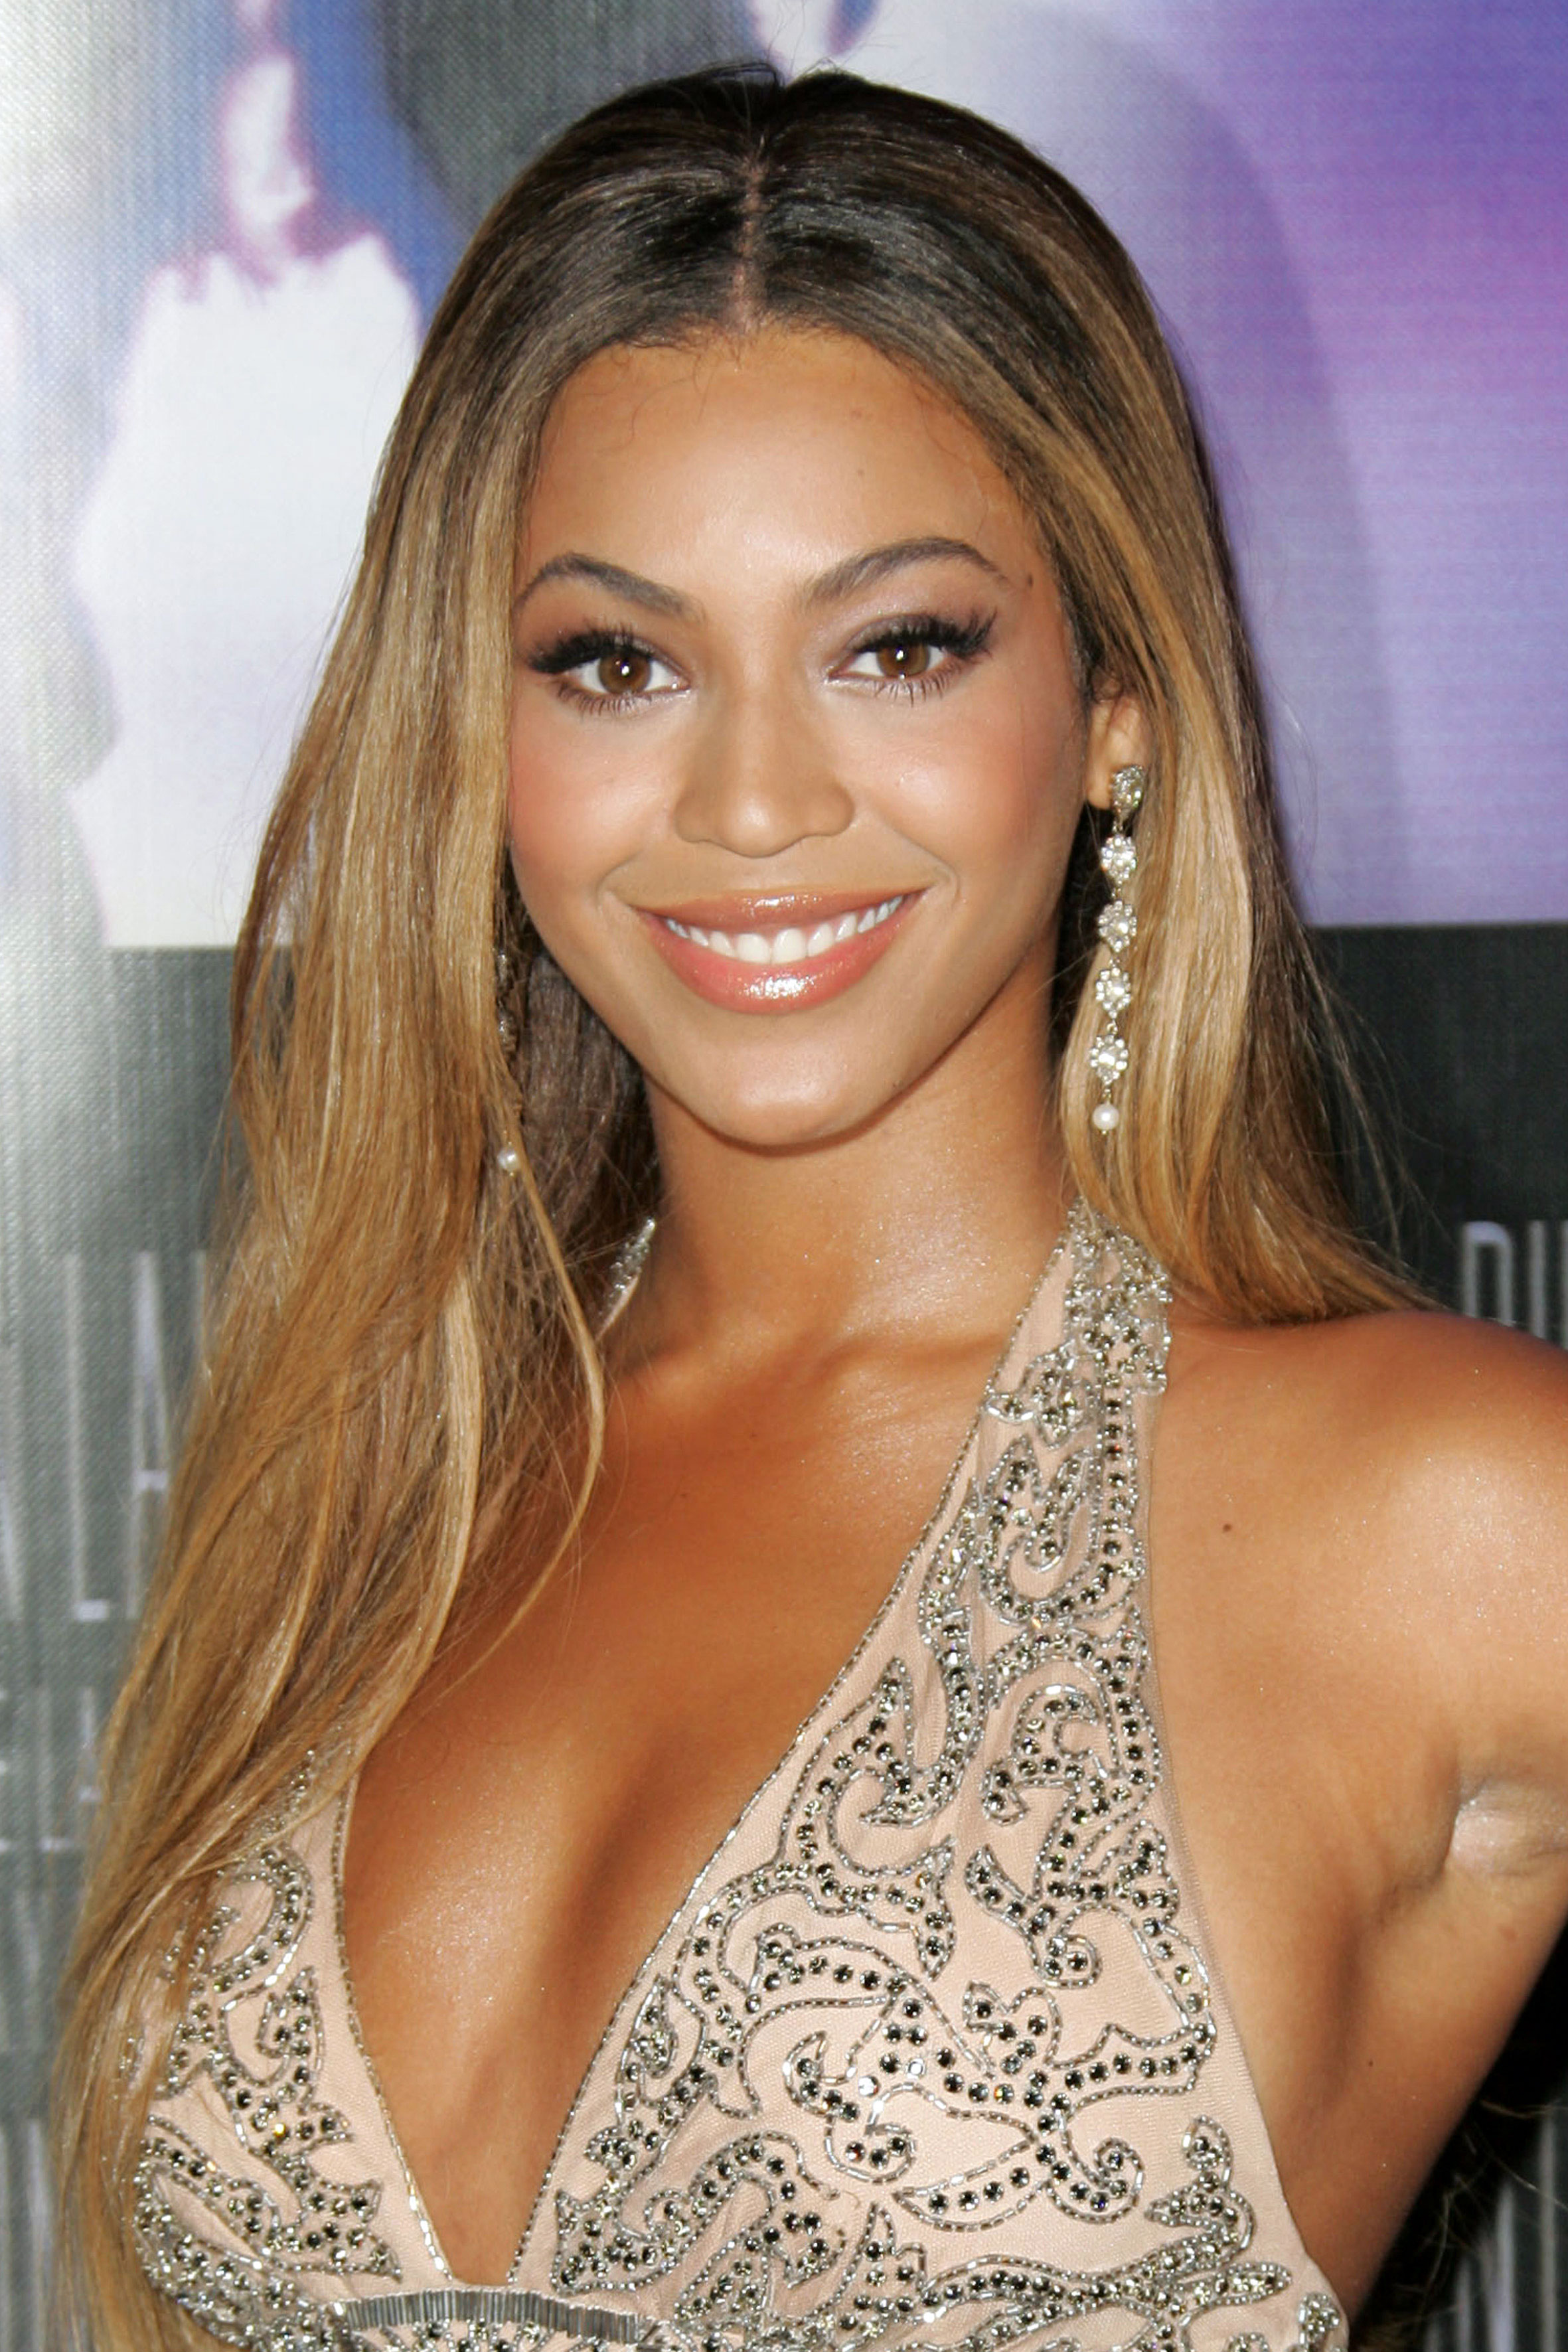 Stupendous 40 Beyonce Hairstyles Beyonce39S Real Hair Long Hair And Short Short Hairstyles For Black Women Fulllsitofus